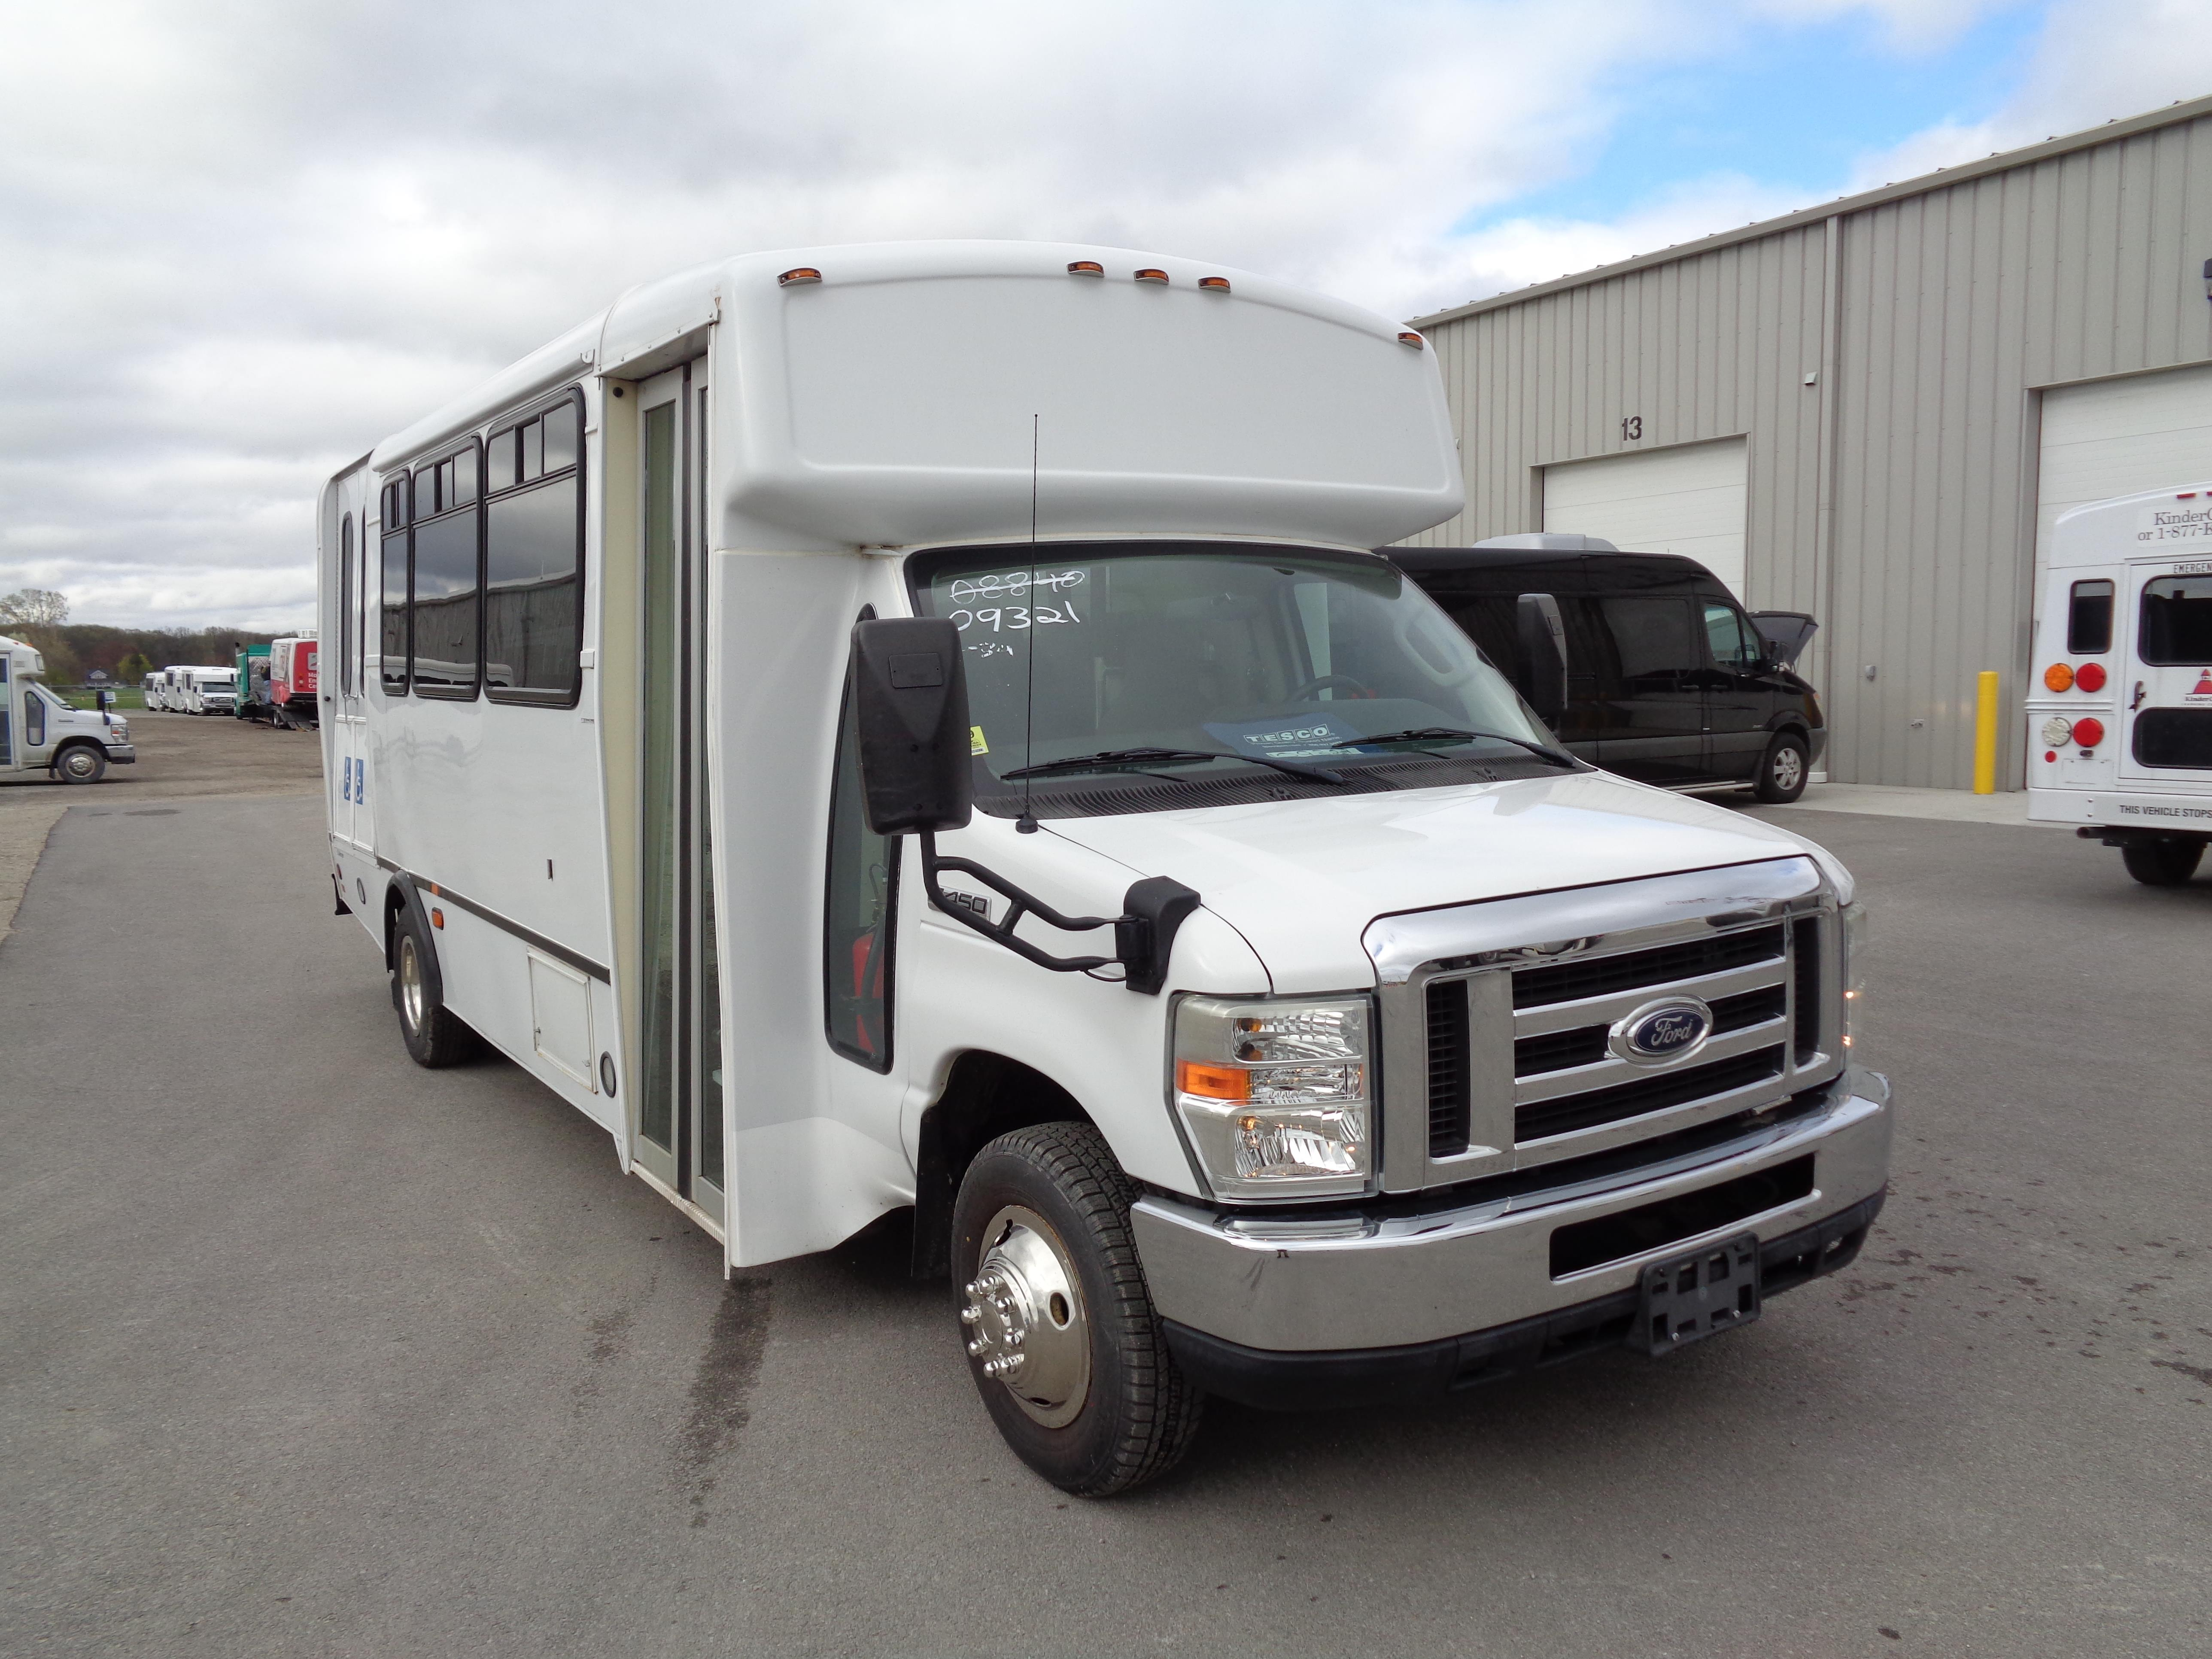 2009 Champion Ford E450 2 Passengers and 6 Wheelchairs